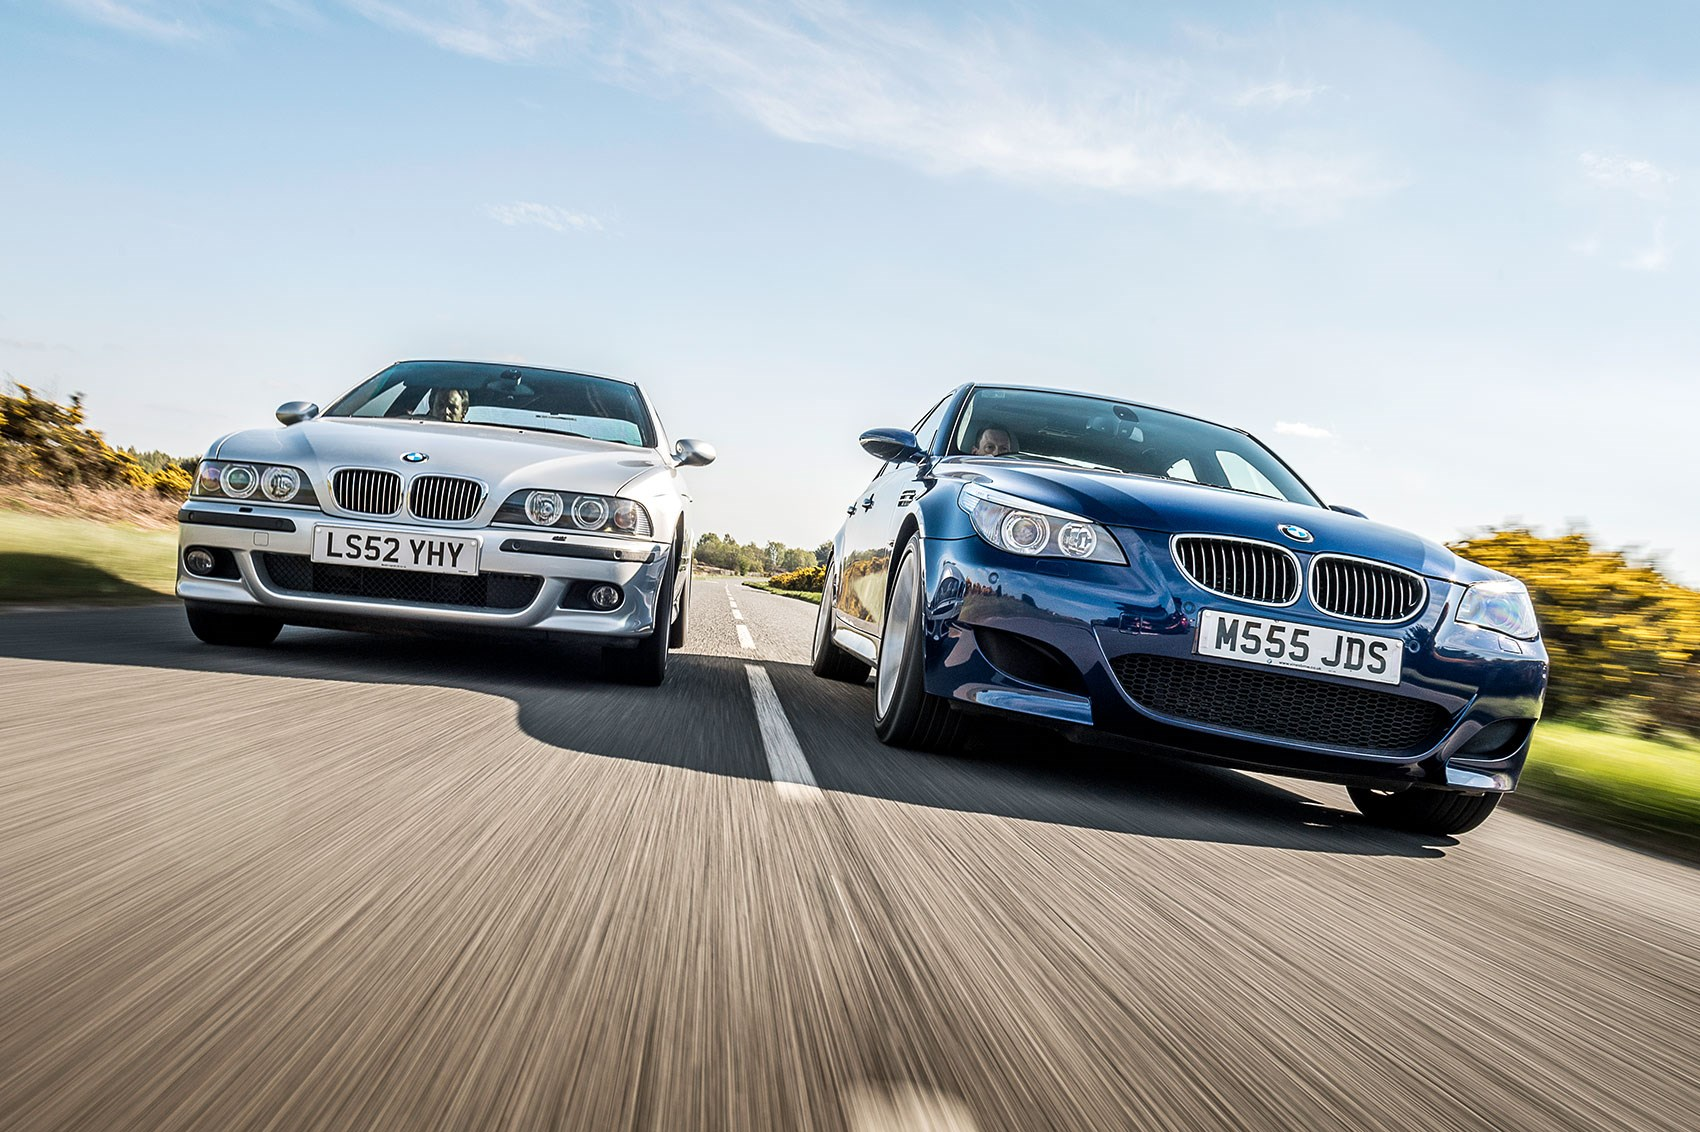 BMW M5 buying guide: driving all of the first five BMW M5